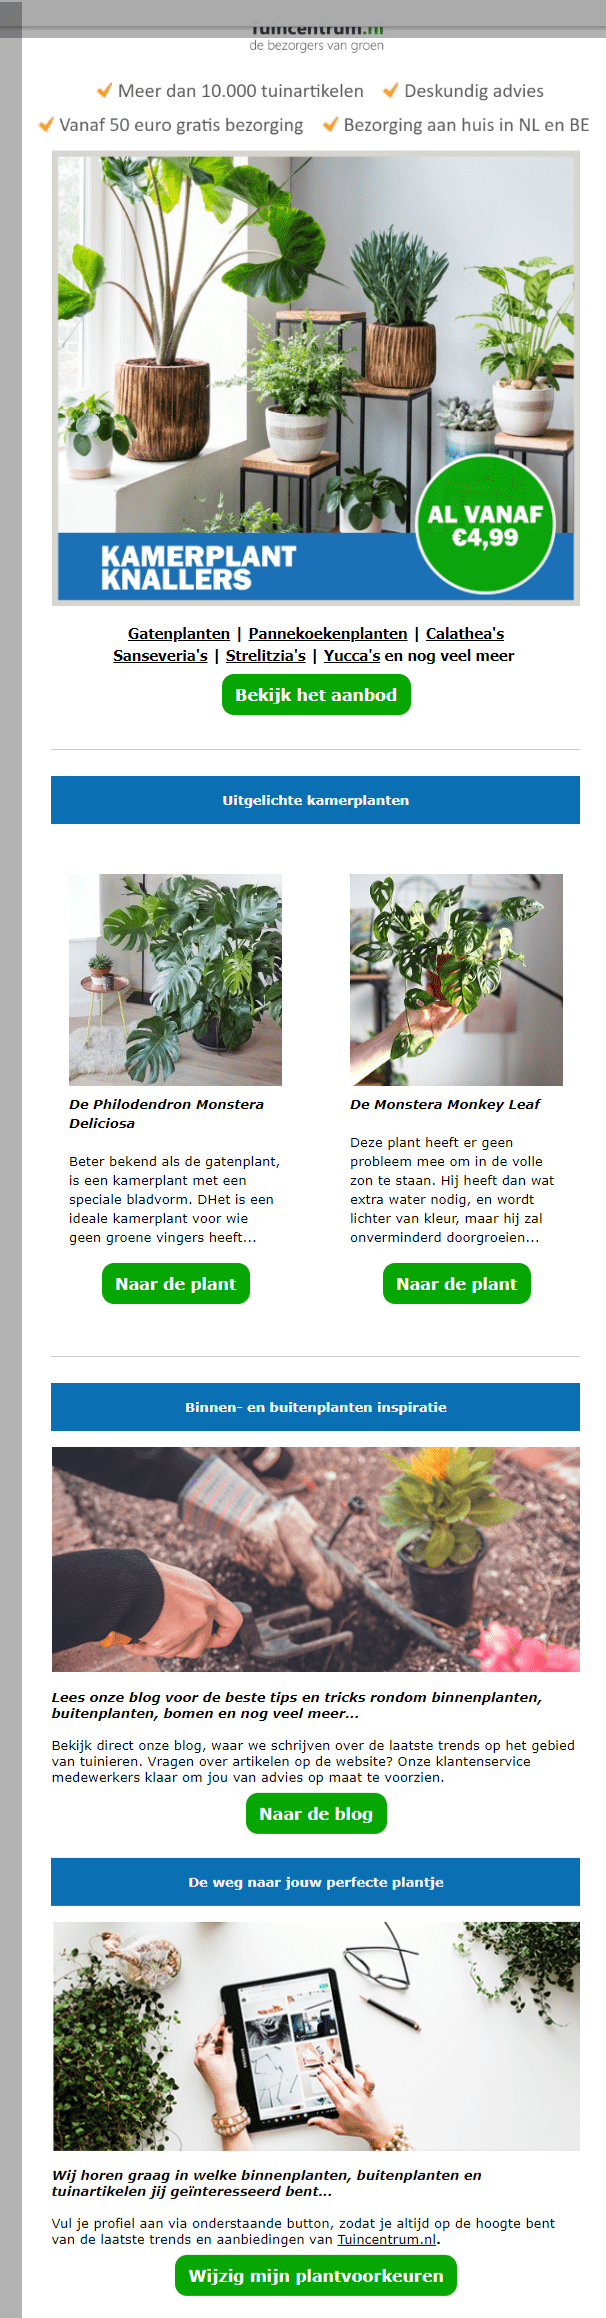 """Image of a newsletter for plants with text """"Kamerplant Knallers"""""""